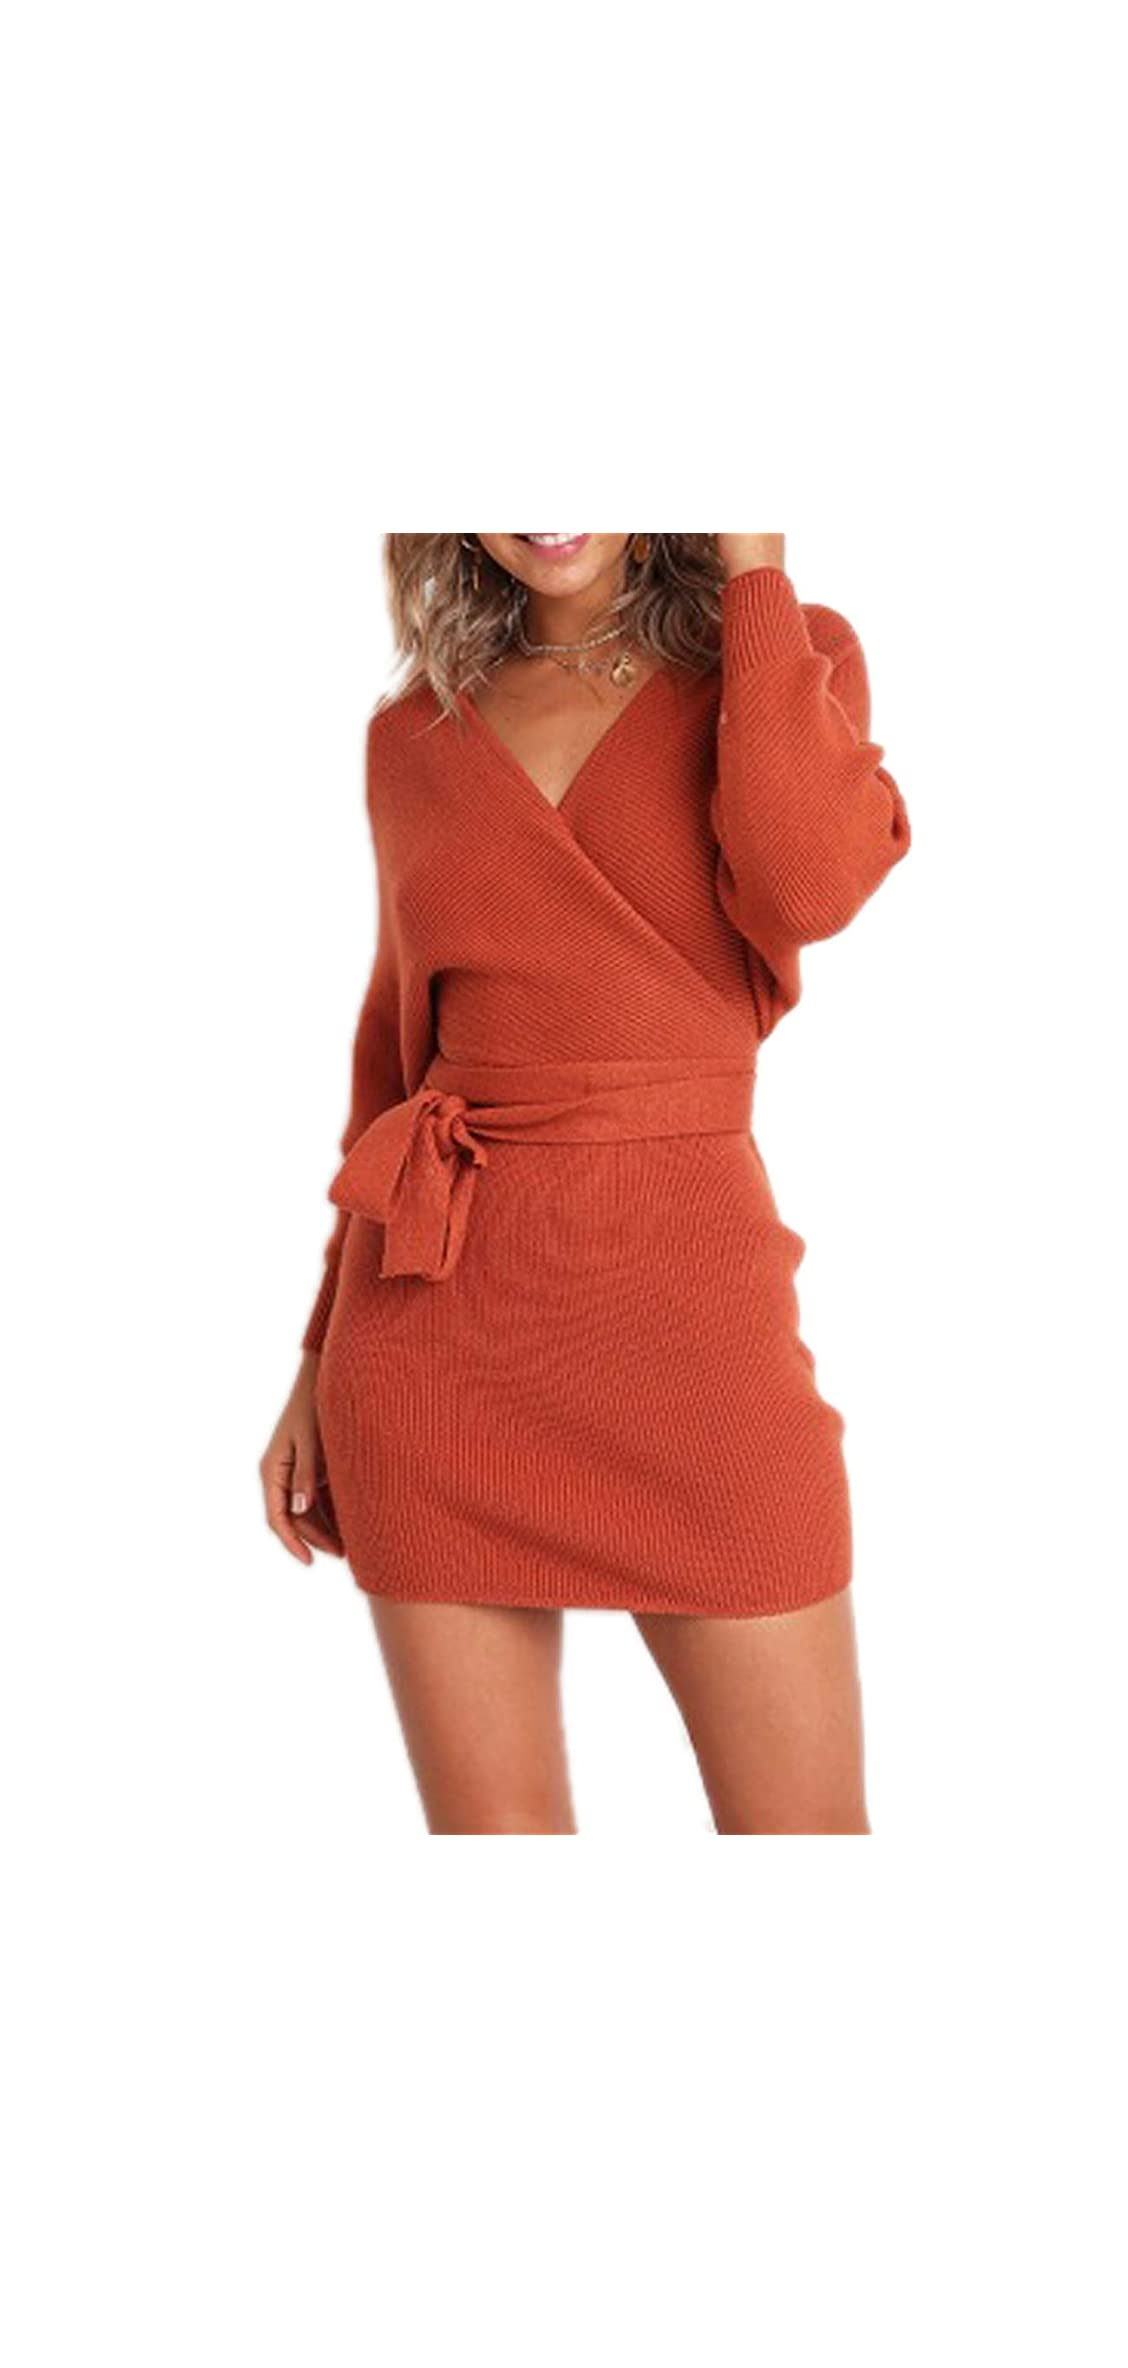 Women's Sexy Cocktail Batwing Long Sleeve Backless Mock